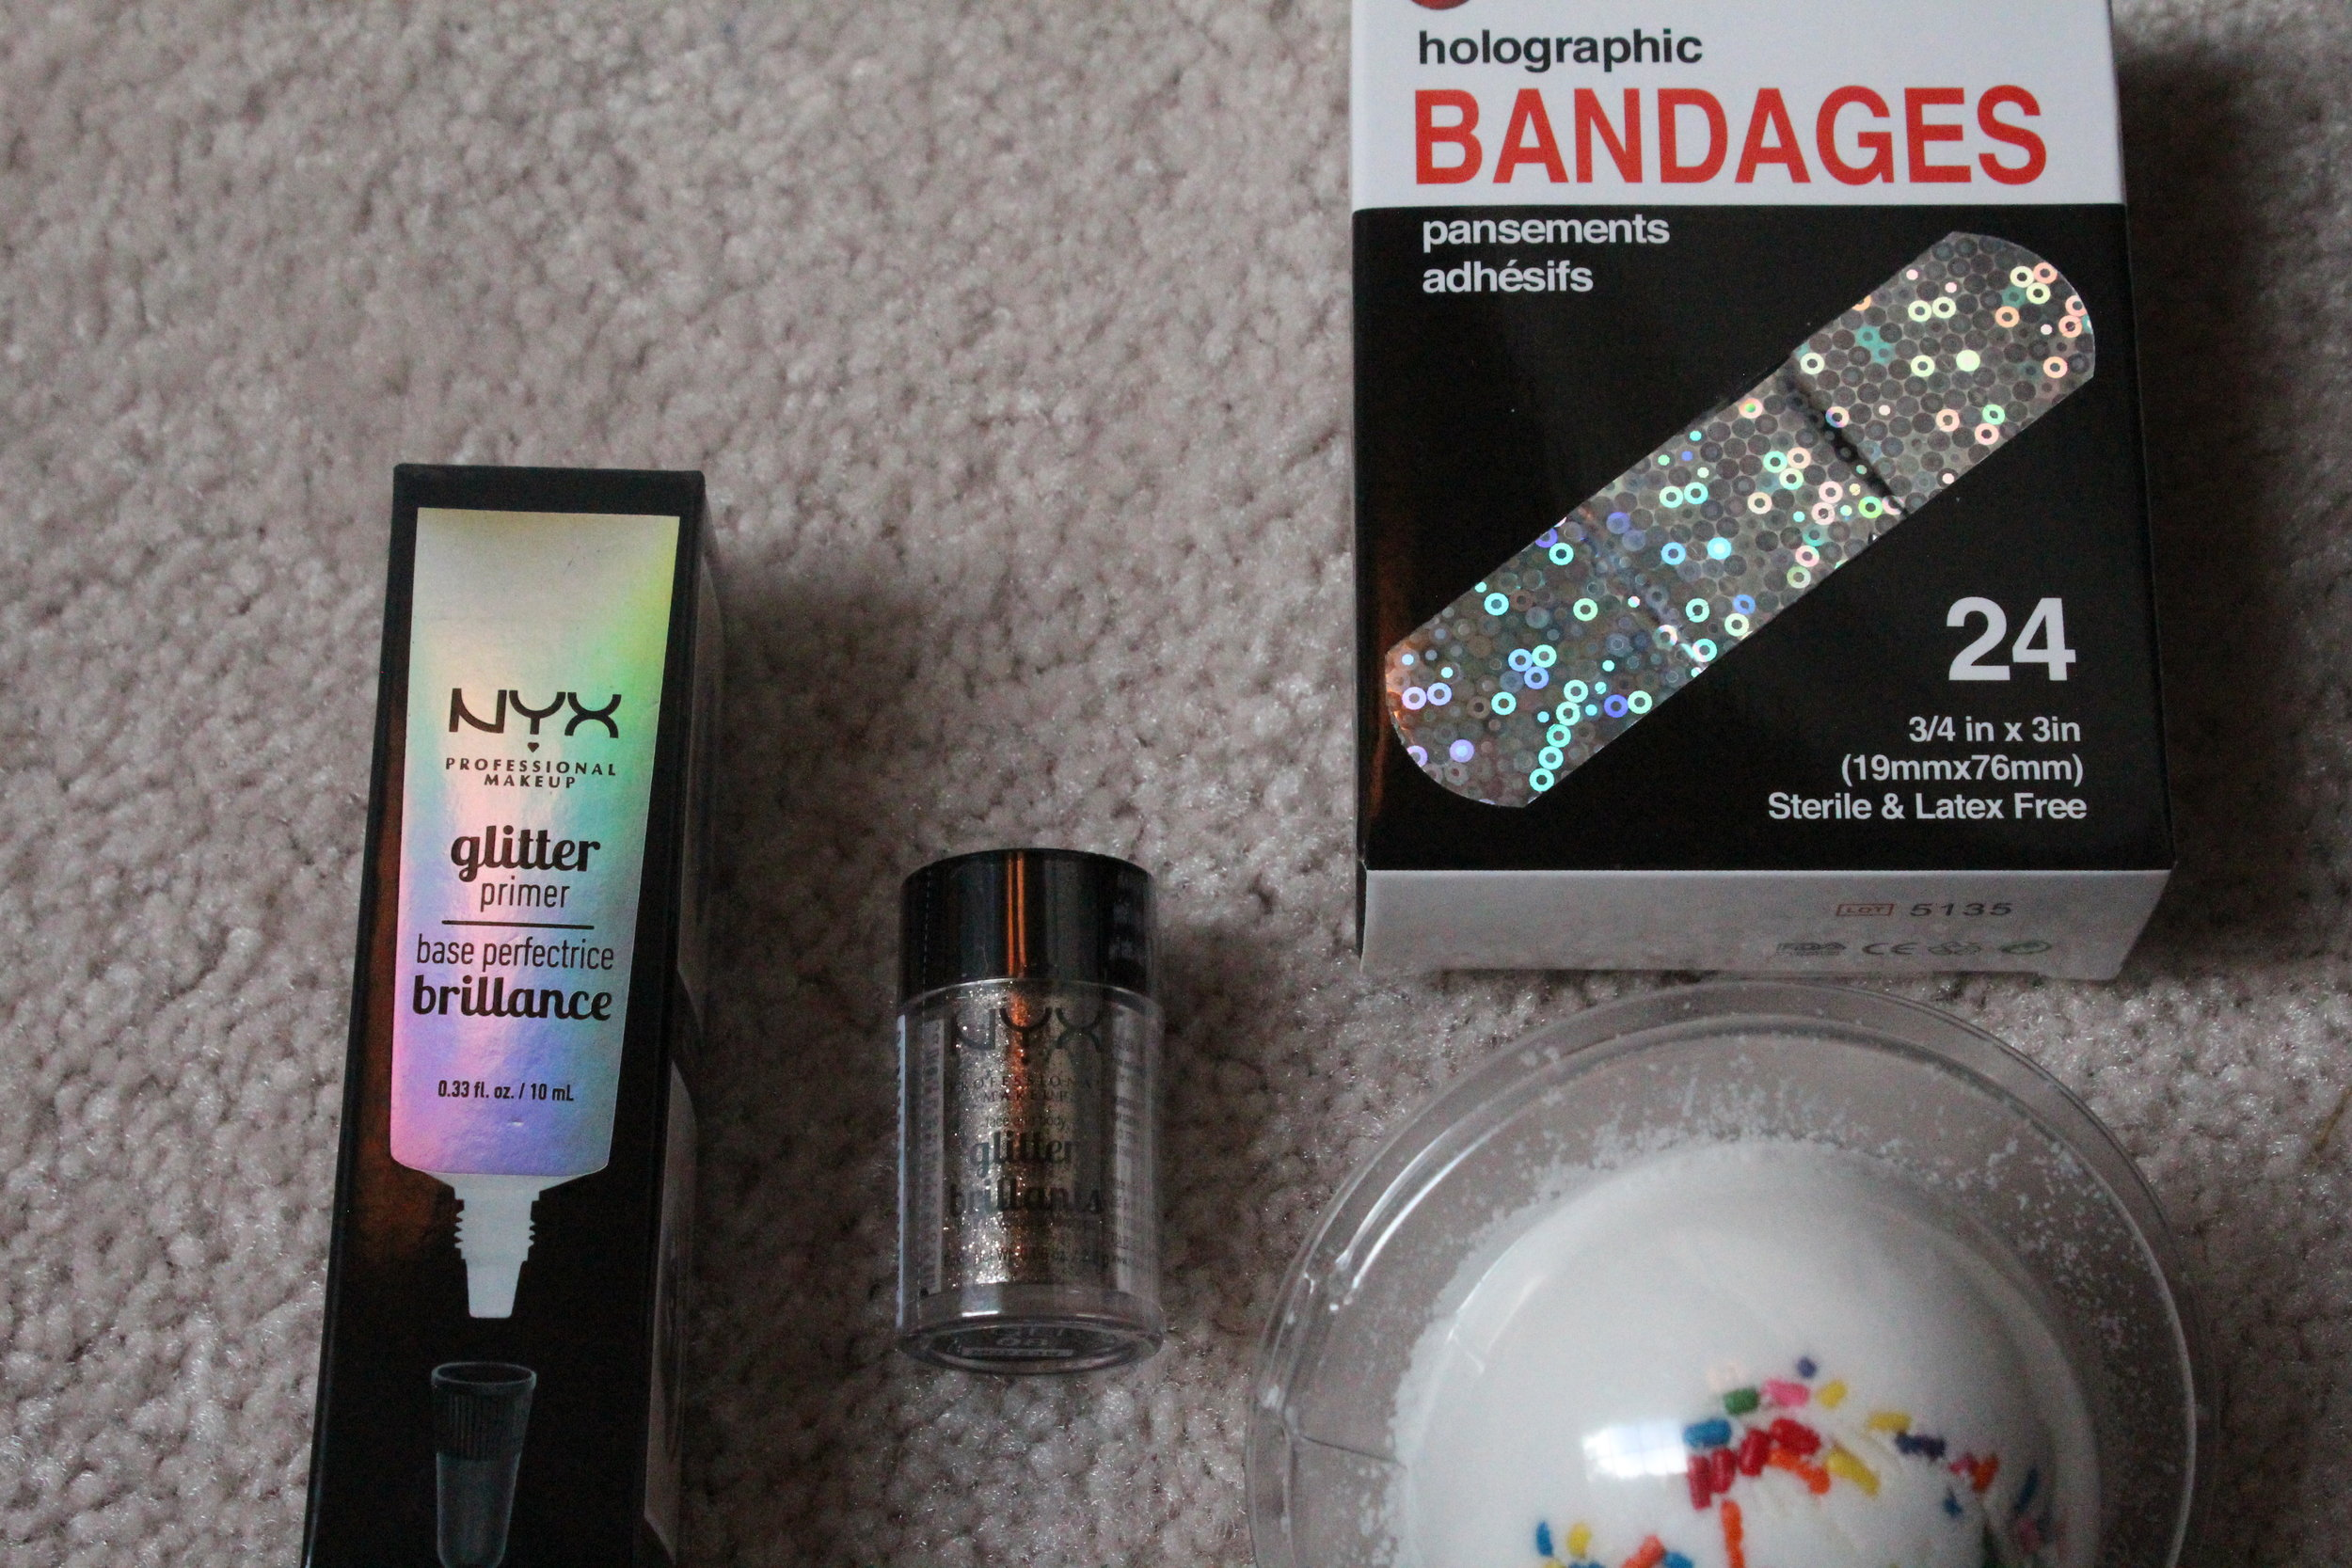 Here we've got some ESSENTIAL makeup and overall self care items. Glitter OBVIOUSLY. And some psychedelic bandages are always a good idea.